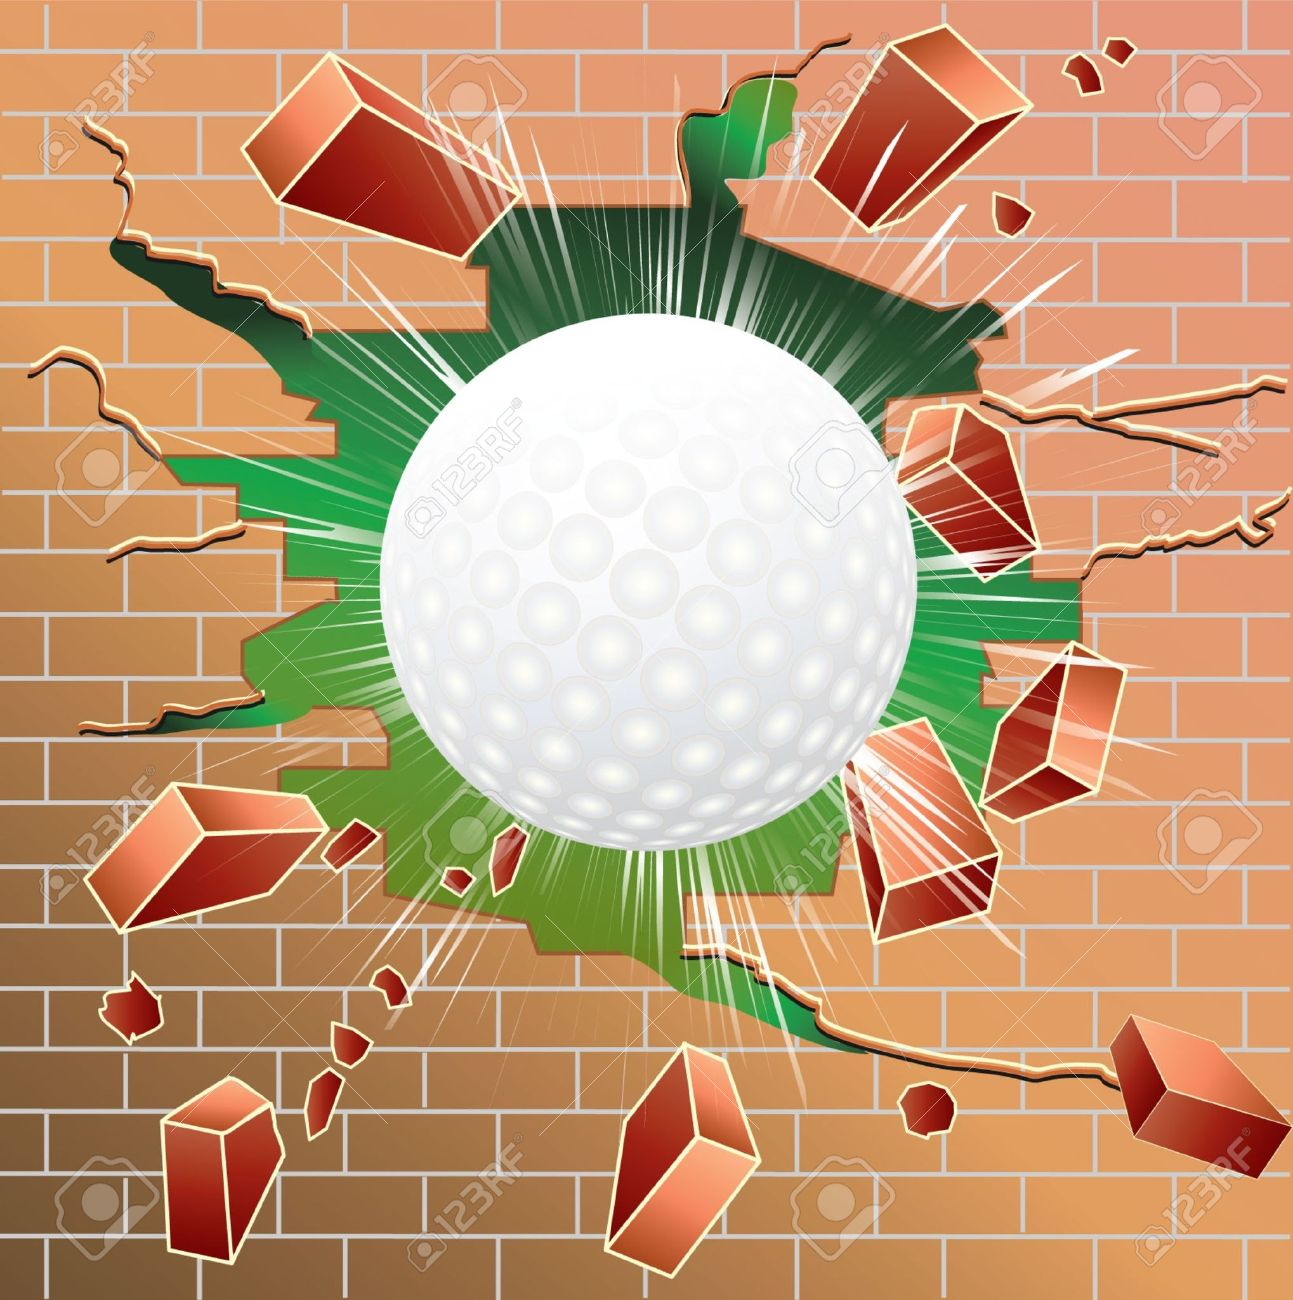 Cracked brick wall drawing brick wall - Golf Ball Breaking Through Red Brick Wall Stock Vector 13850463